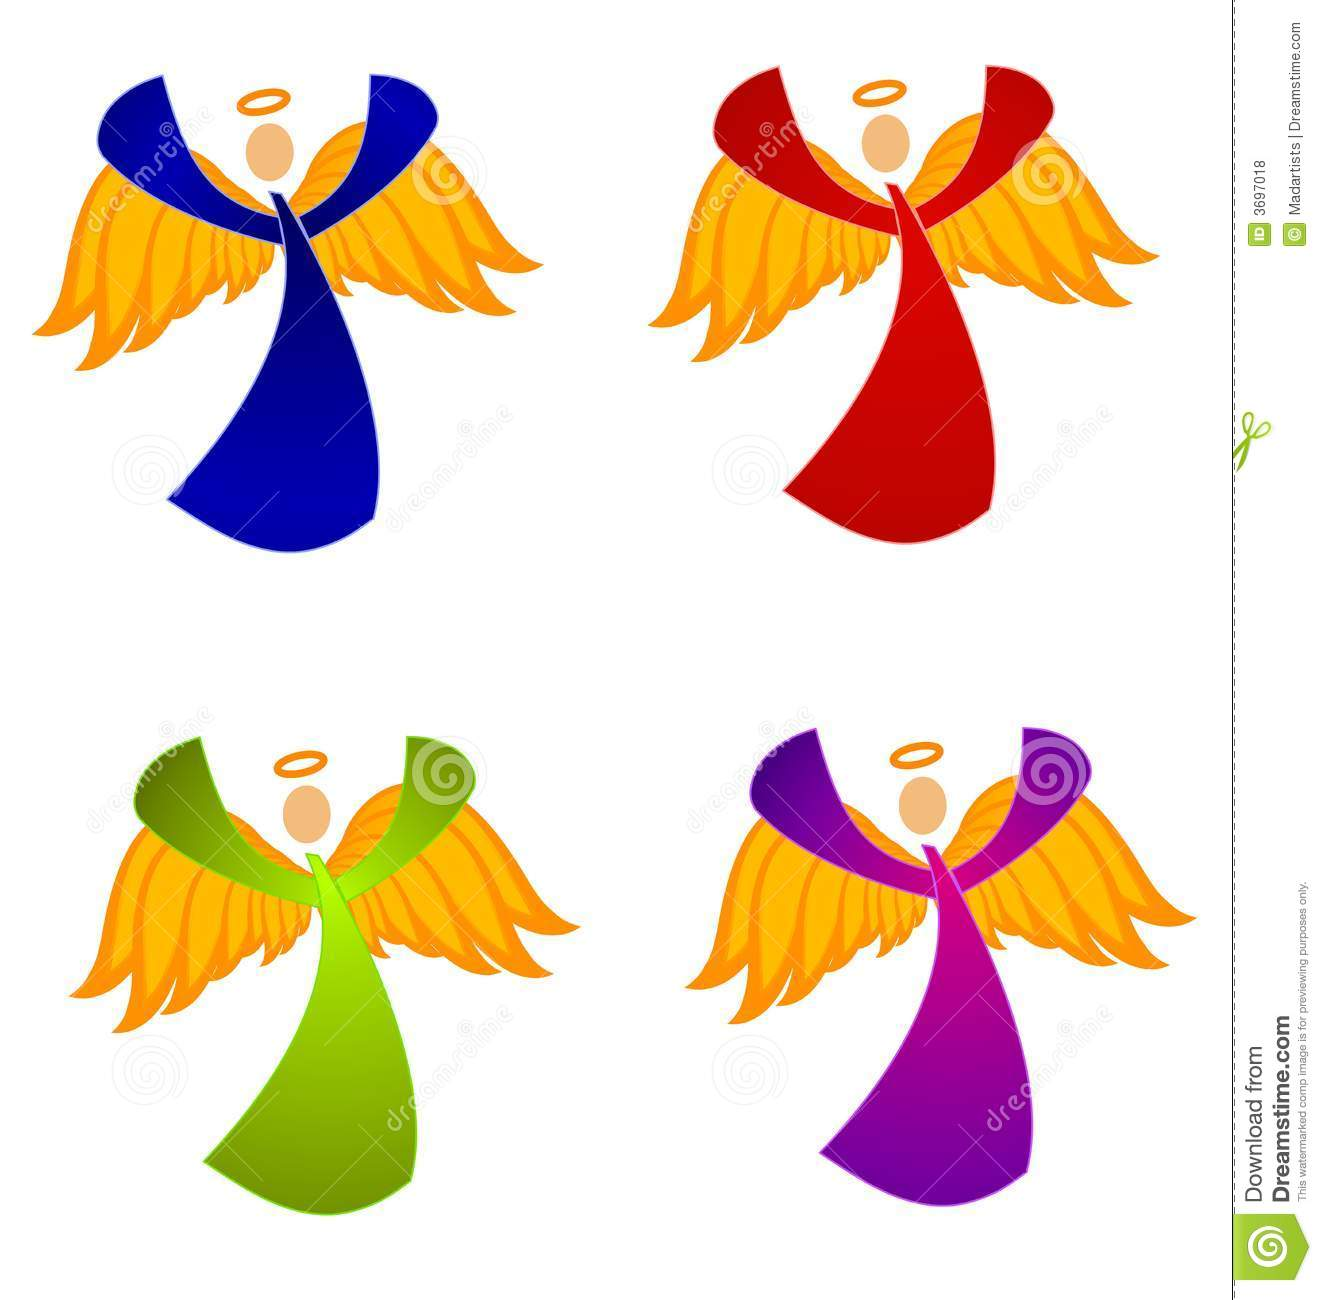 variety of christmas angels clip art stock illustration rh dreamstime com free clipart angels for labels free clipart angel images